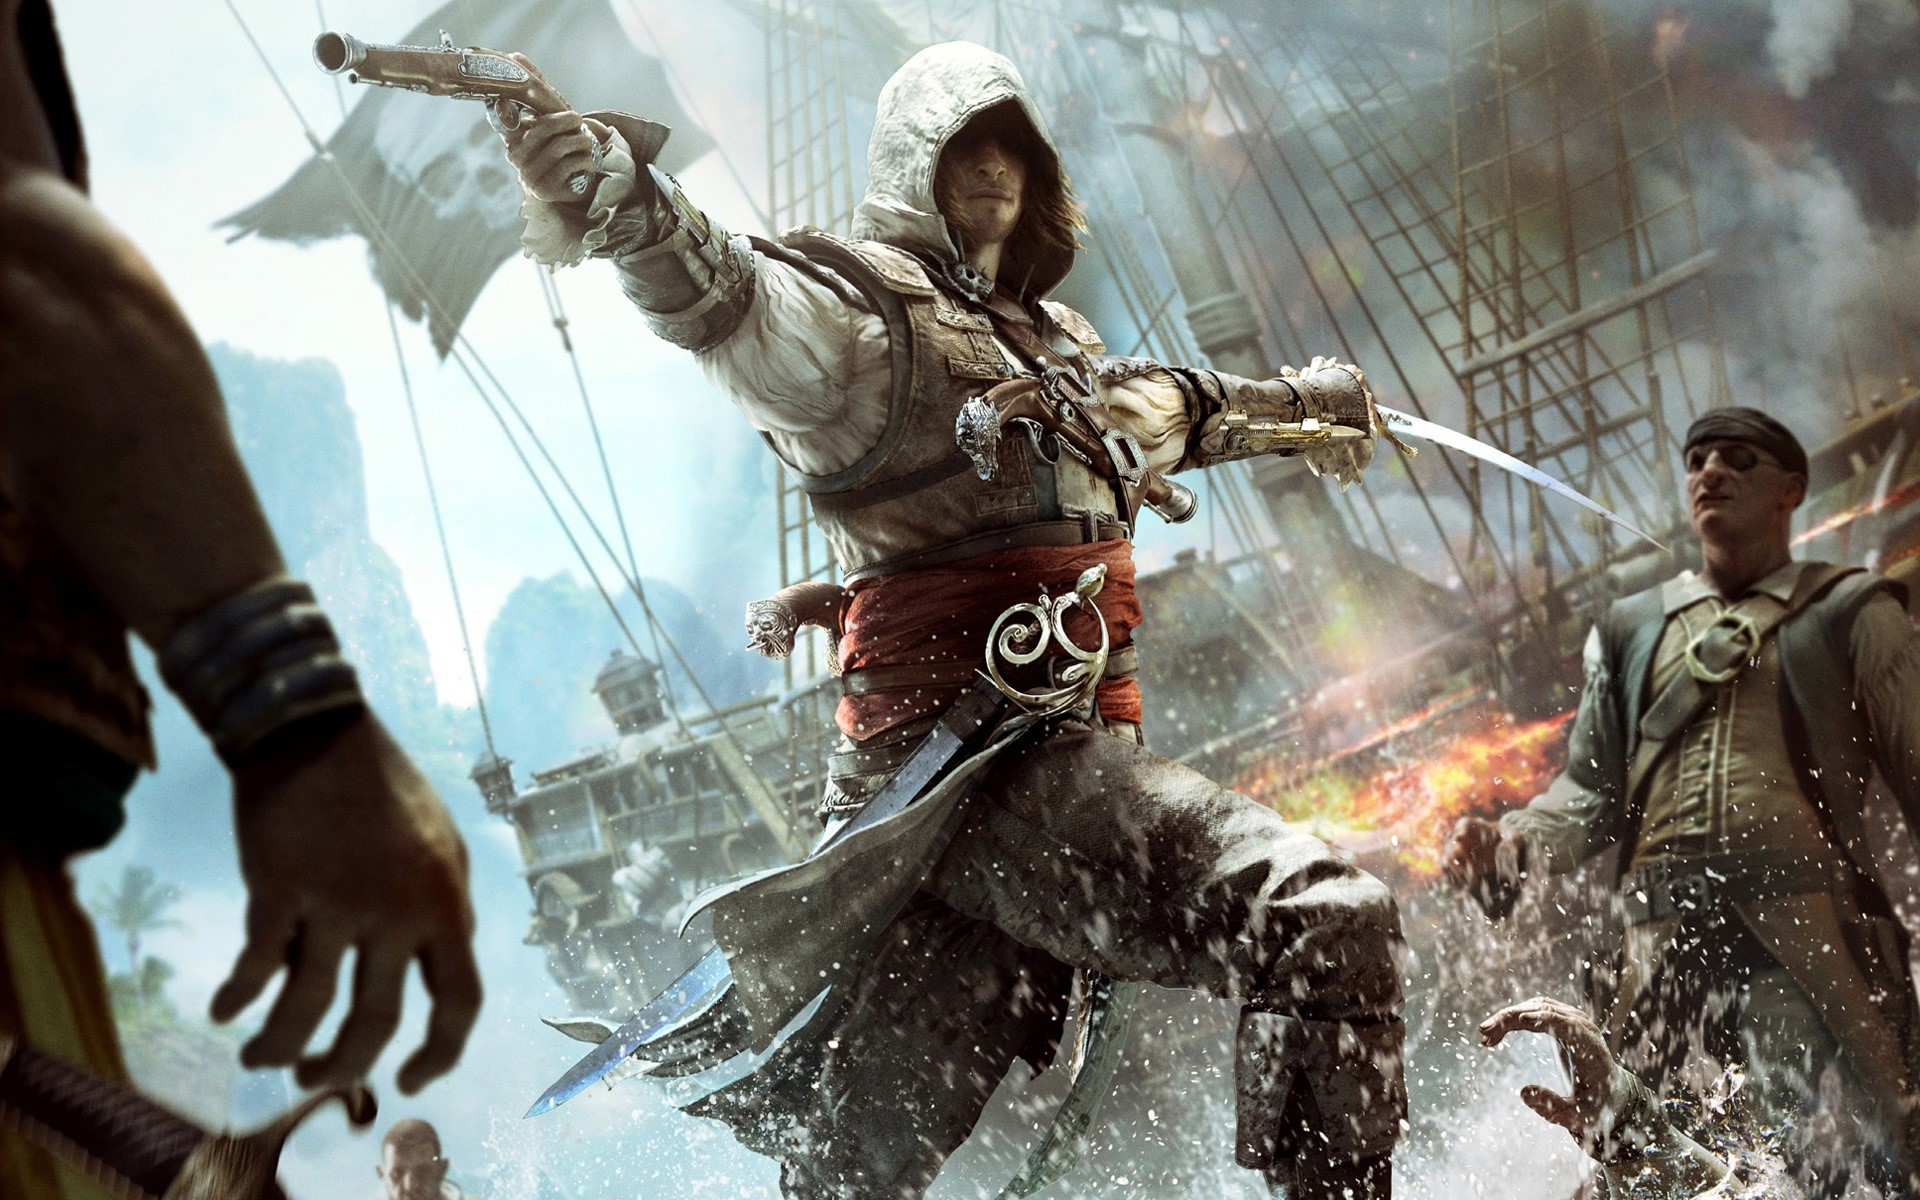 Wallpaper Assassins creed IV Black Flag Images